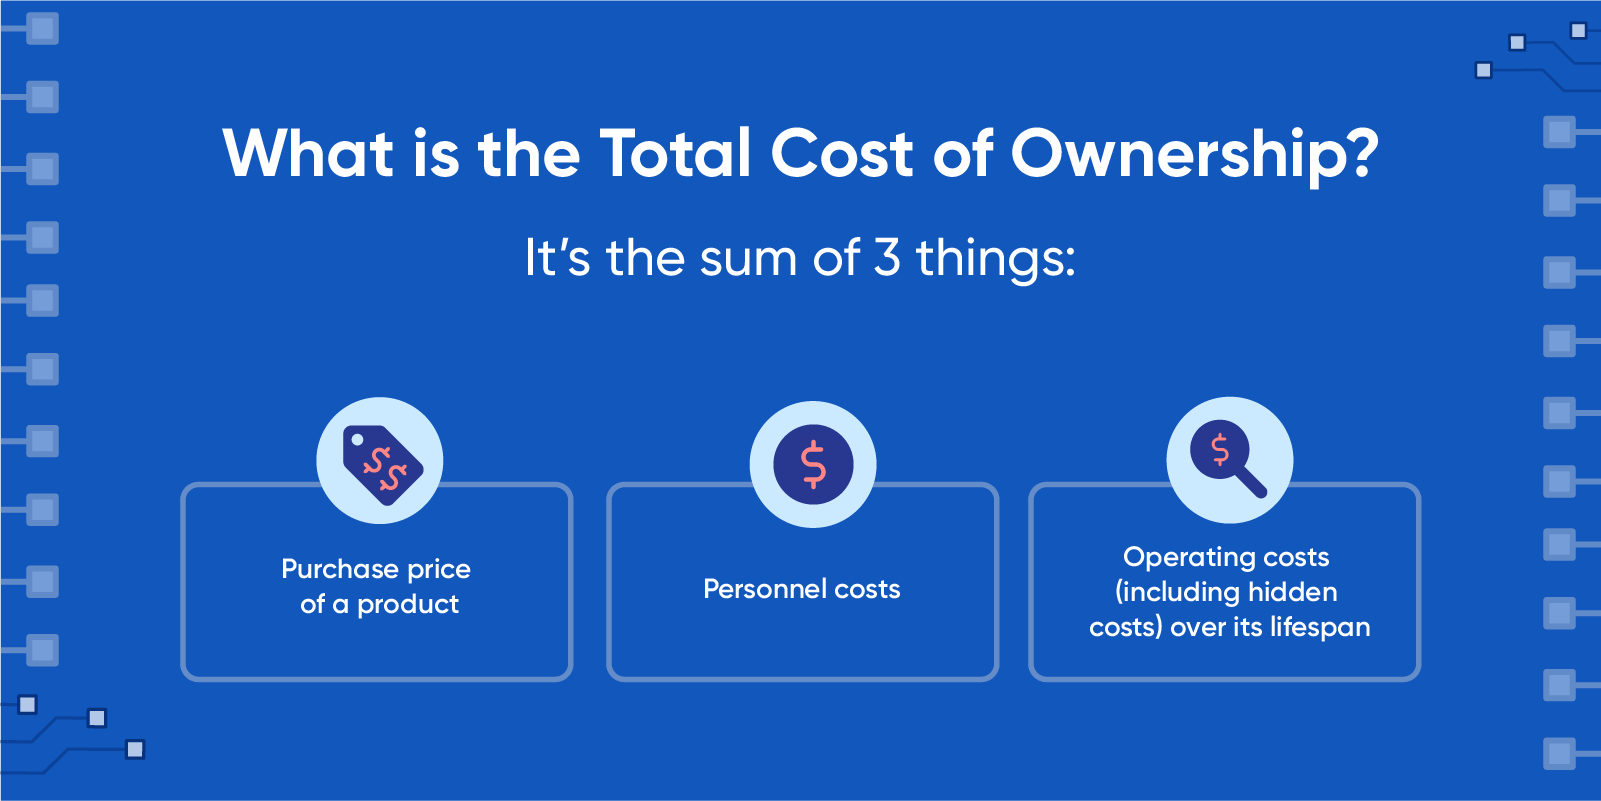 What is Total Cost of Ownership?